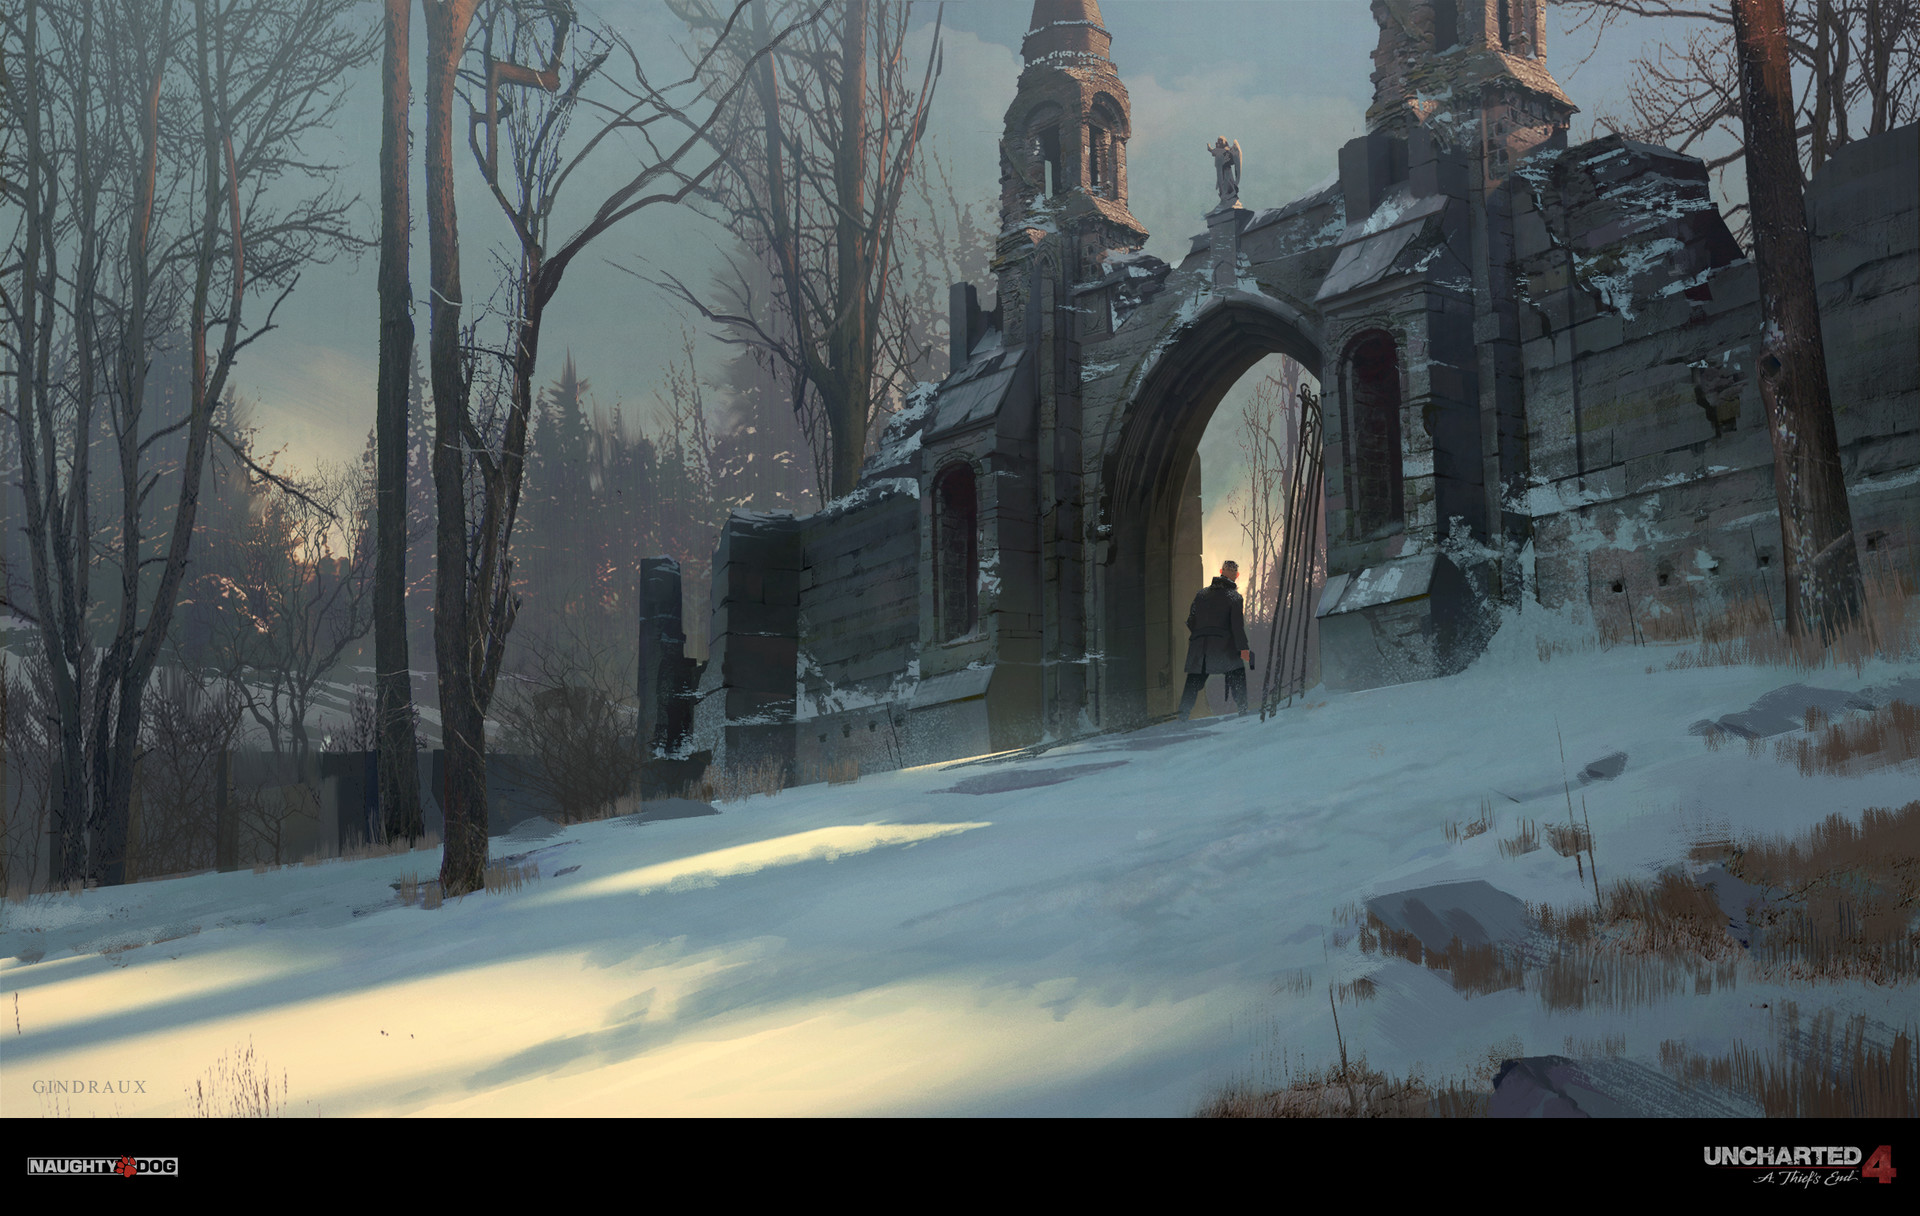 Nick Gindraux Digital Painting Concept Art Uncharted 4 Snow Scotland Gate